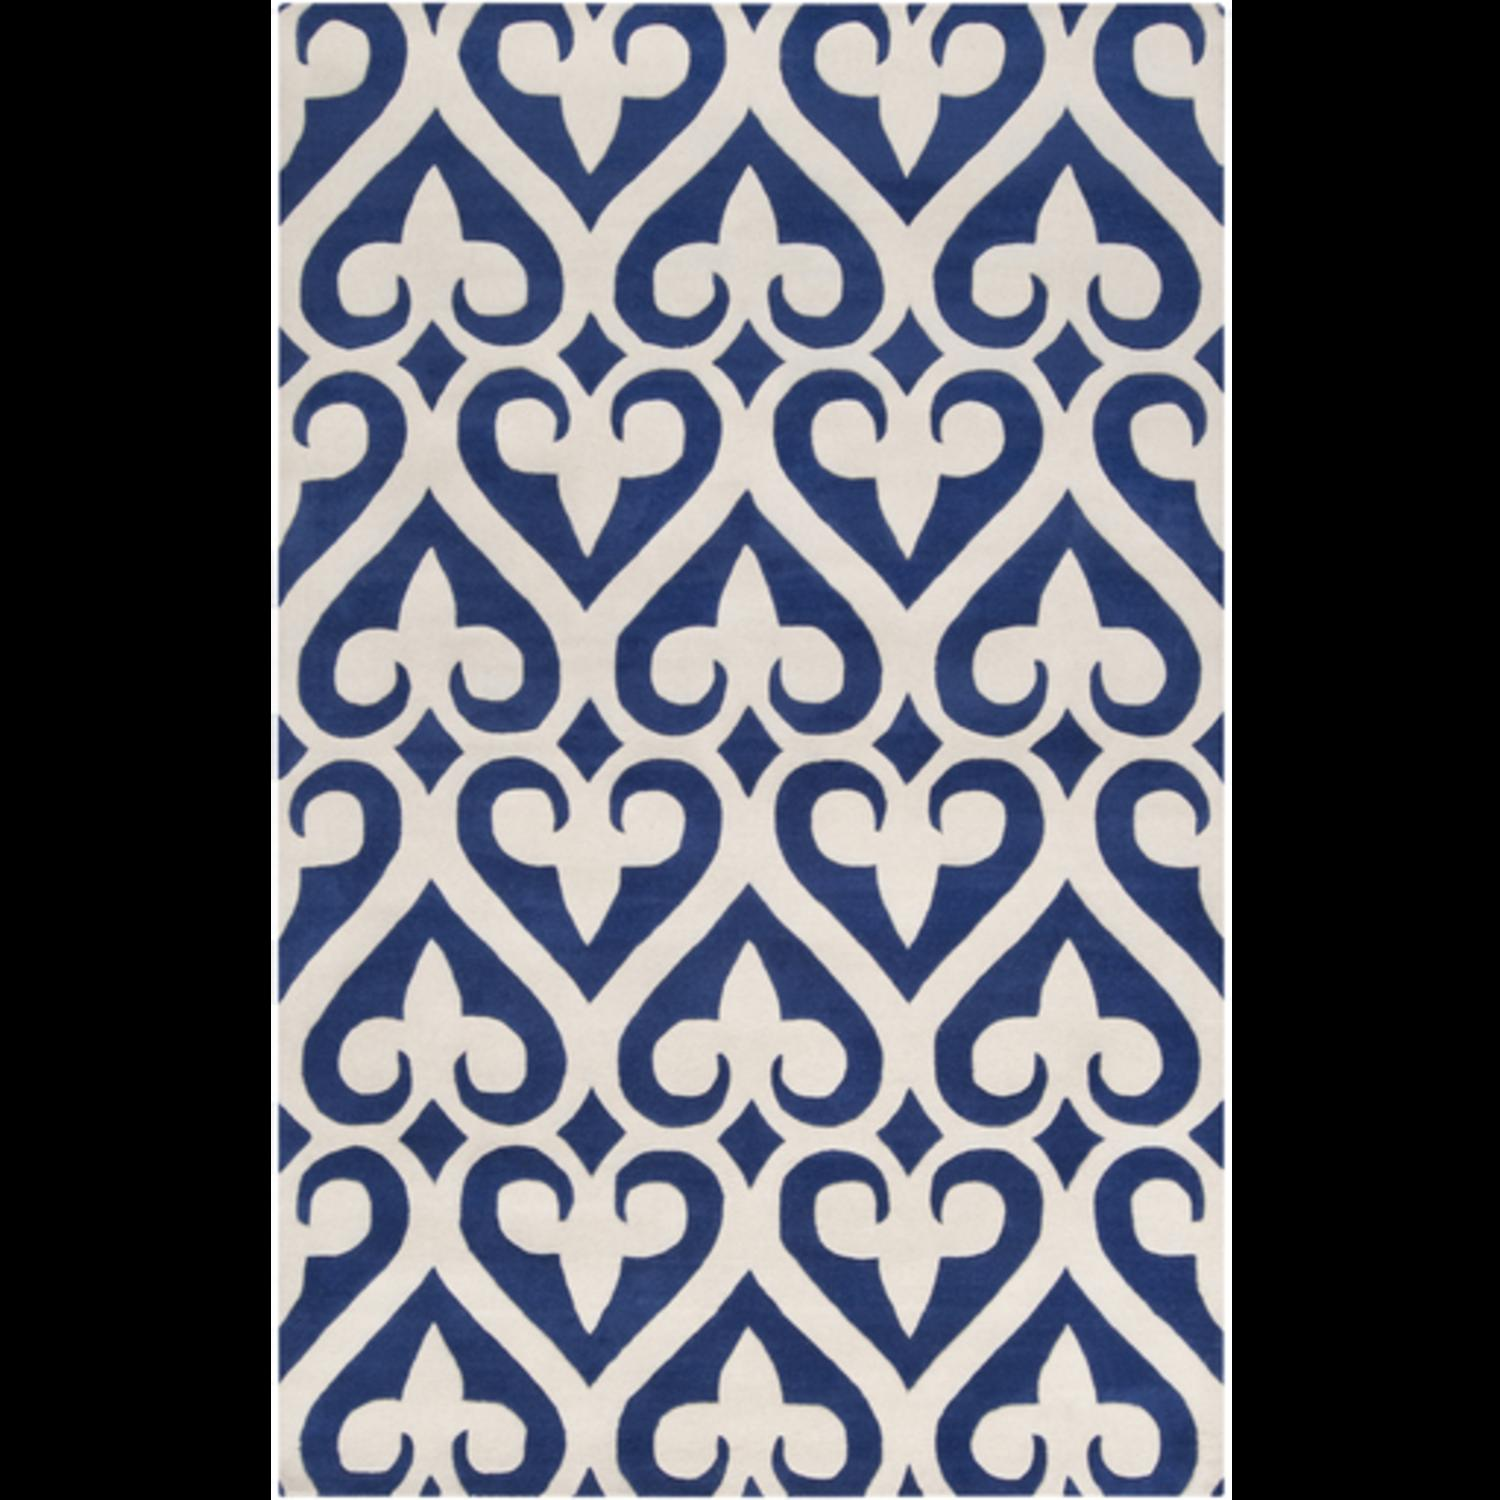 9' x 13' Spades White and Navy Blue Wool Area Throw Rug